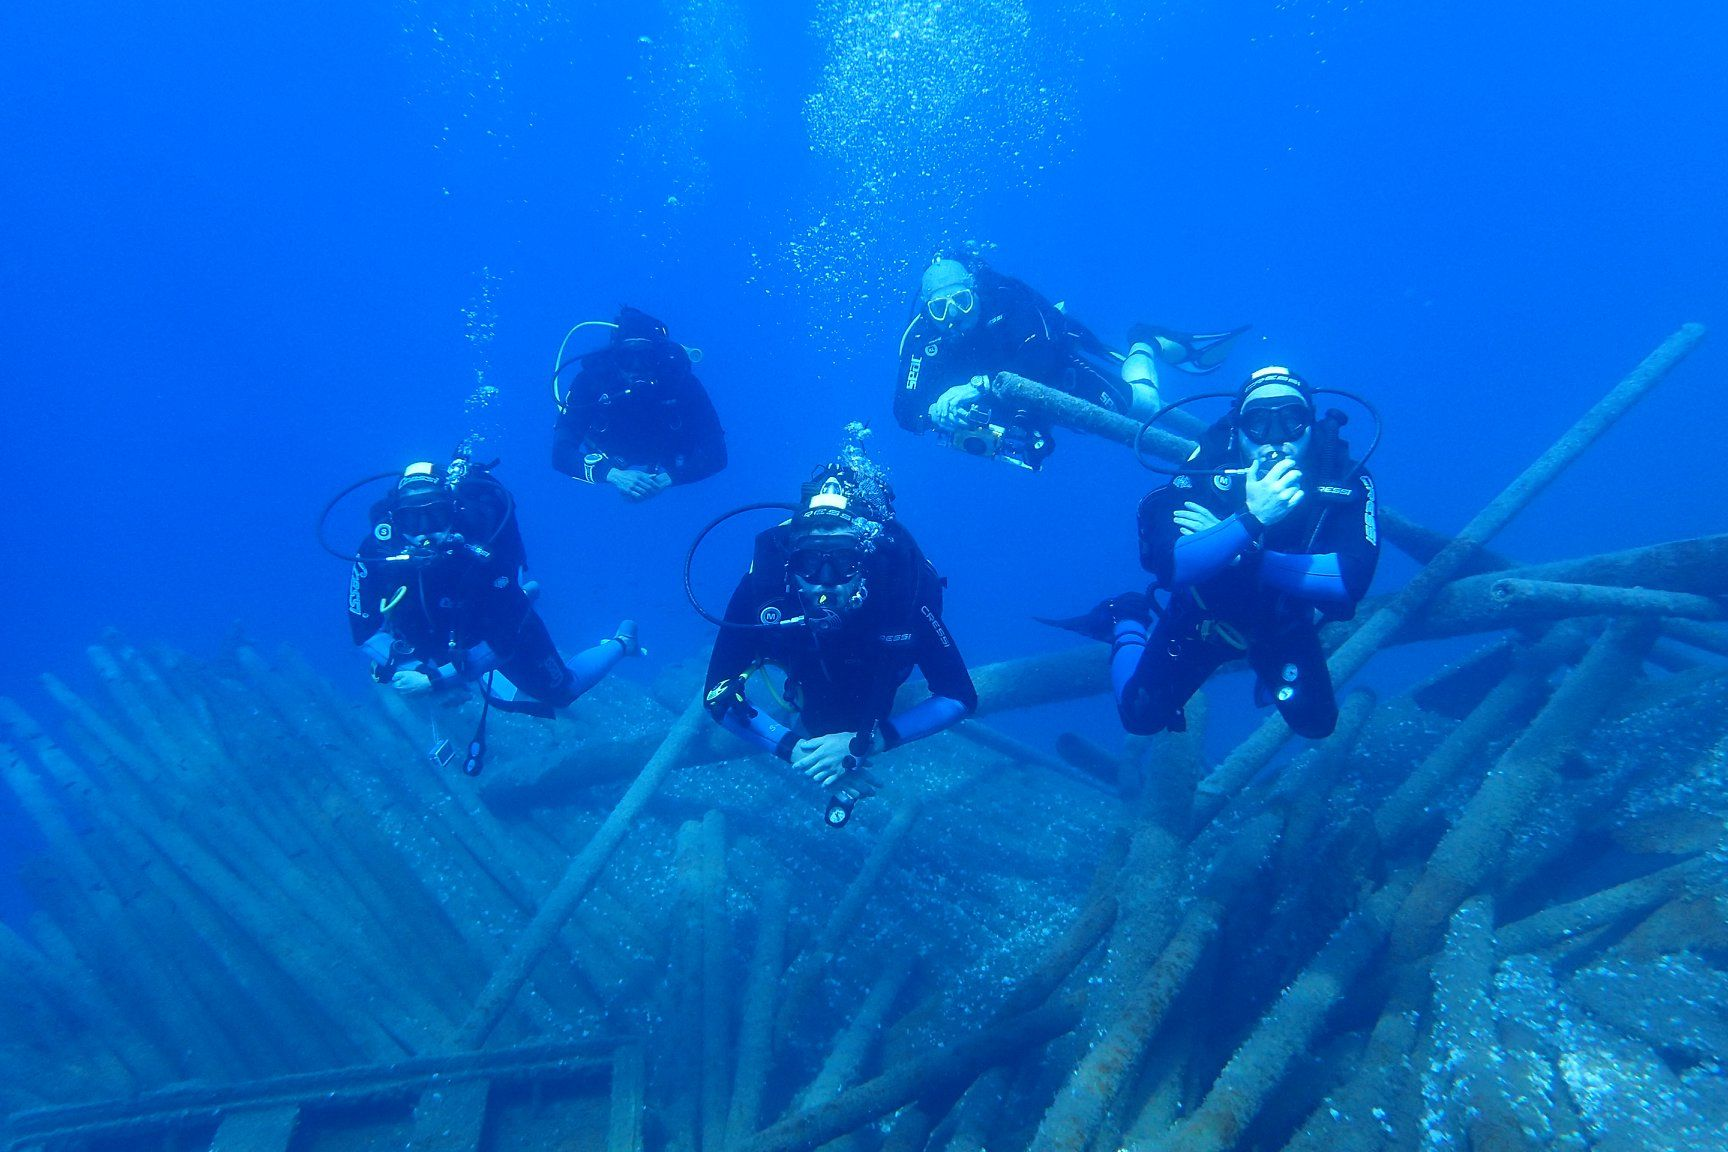 Five scuba divers in extremely blue water over collapsed pipes